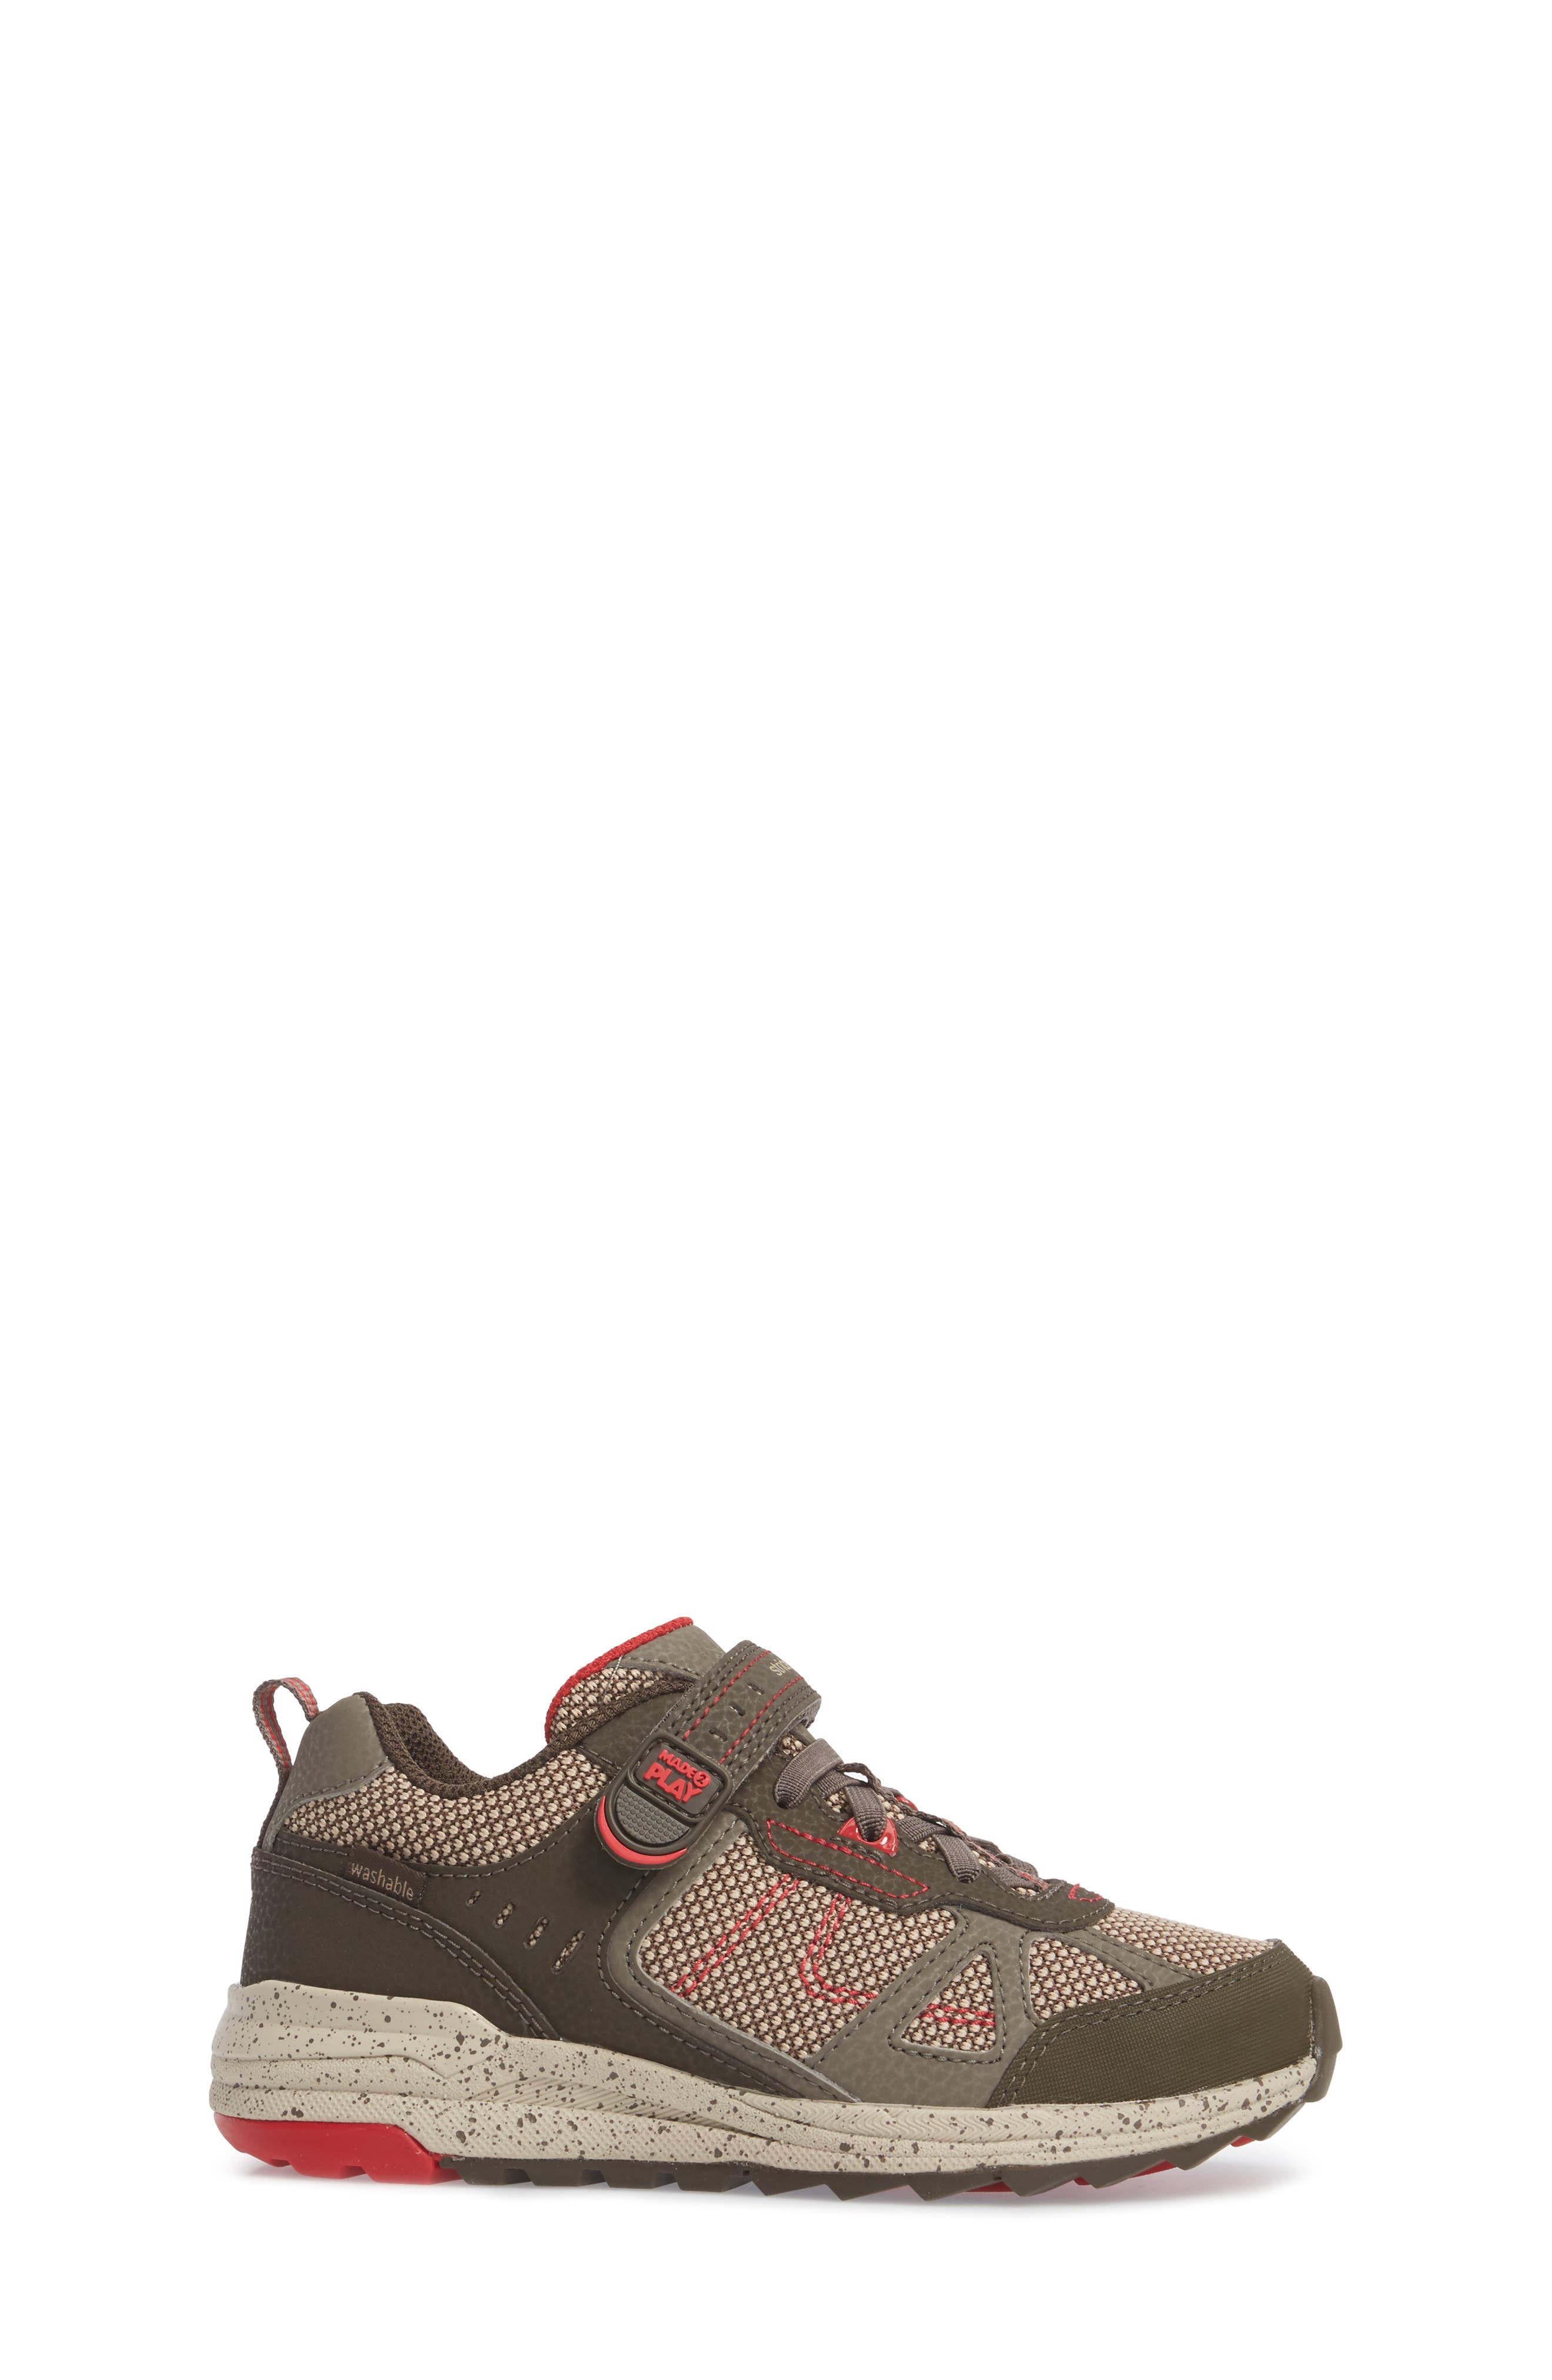 Made2Play<sup>®</sup> Owen Washable Sneaker,                             Alternate thumbnail 3, color,                             BROWN LEATHER/ TEXTILE